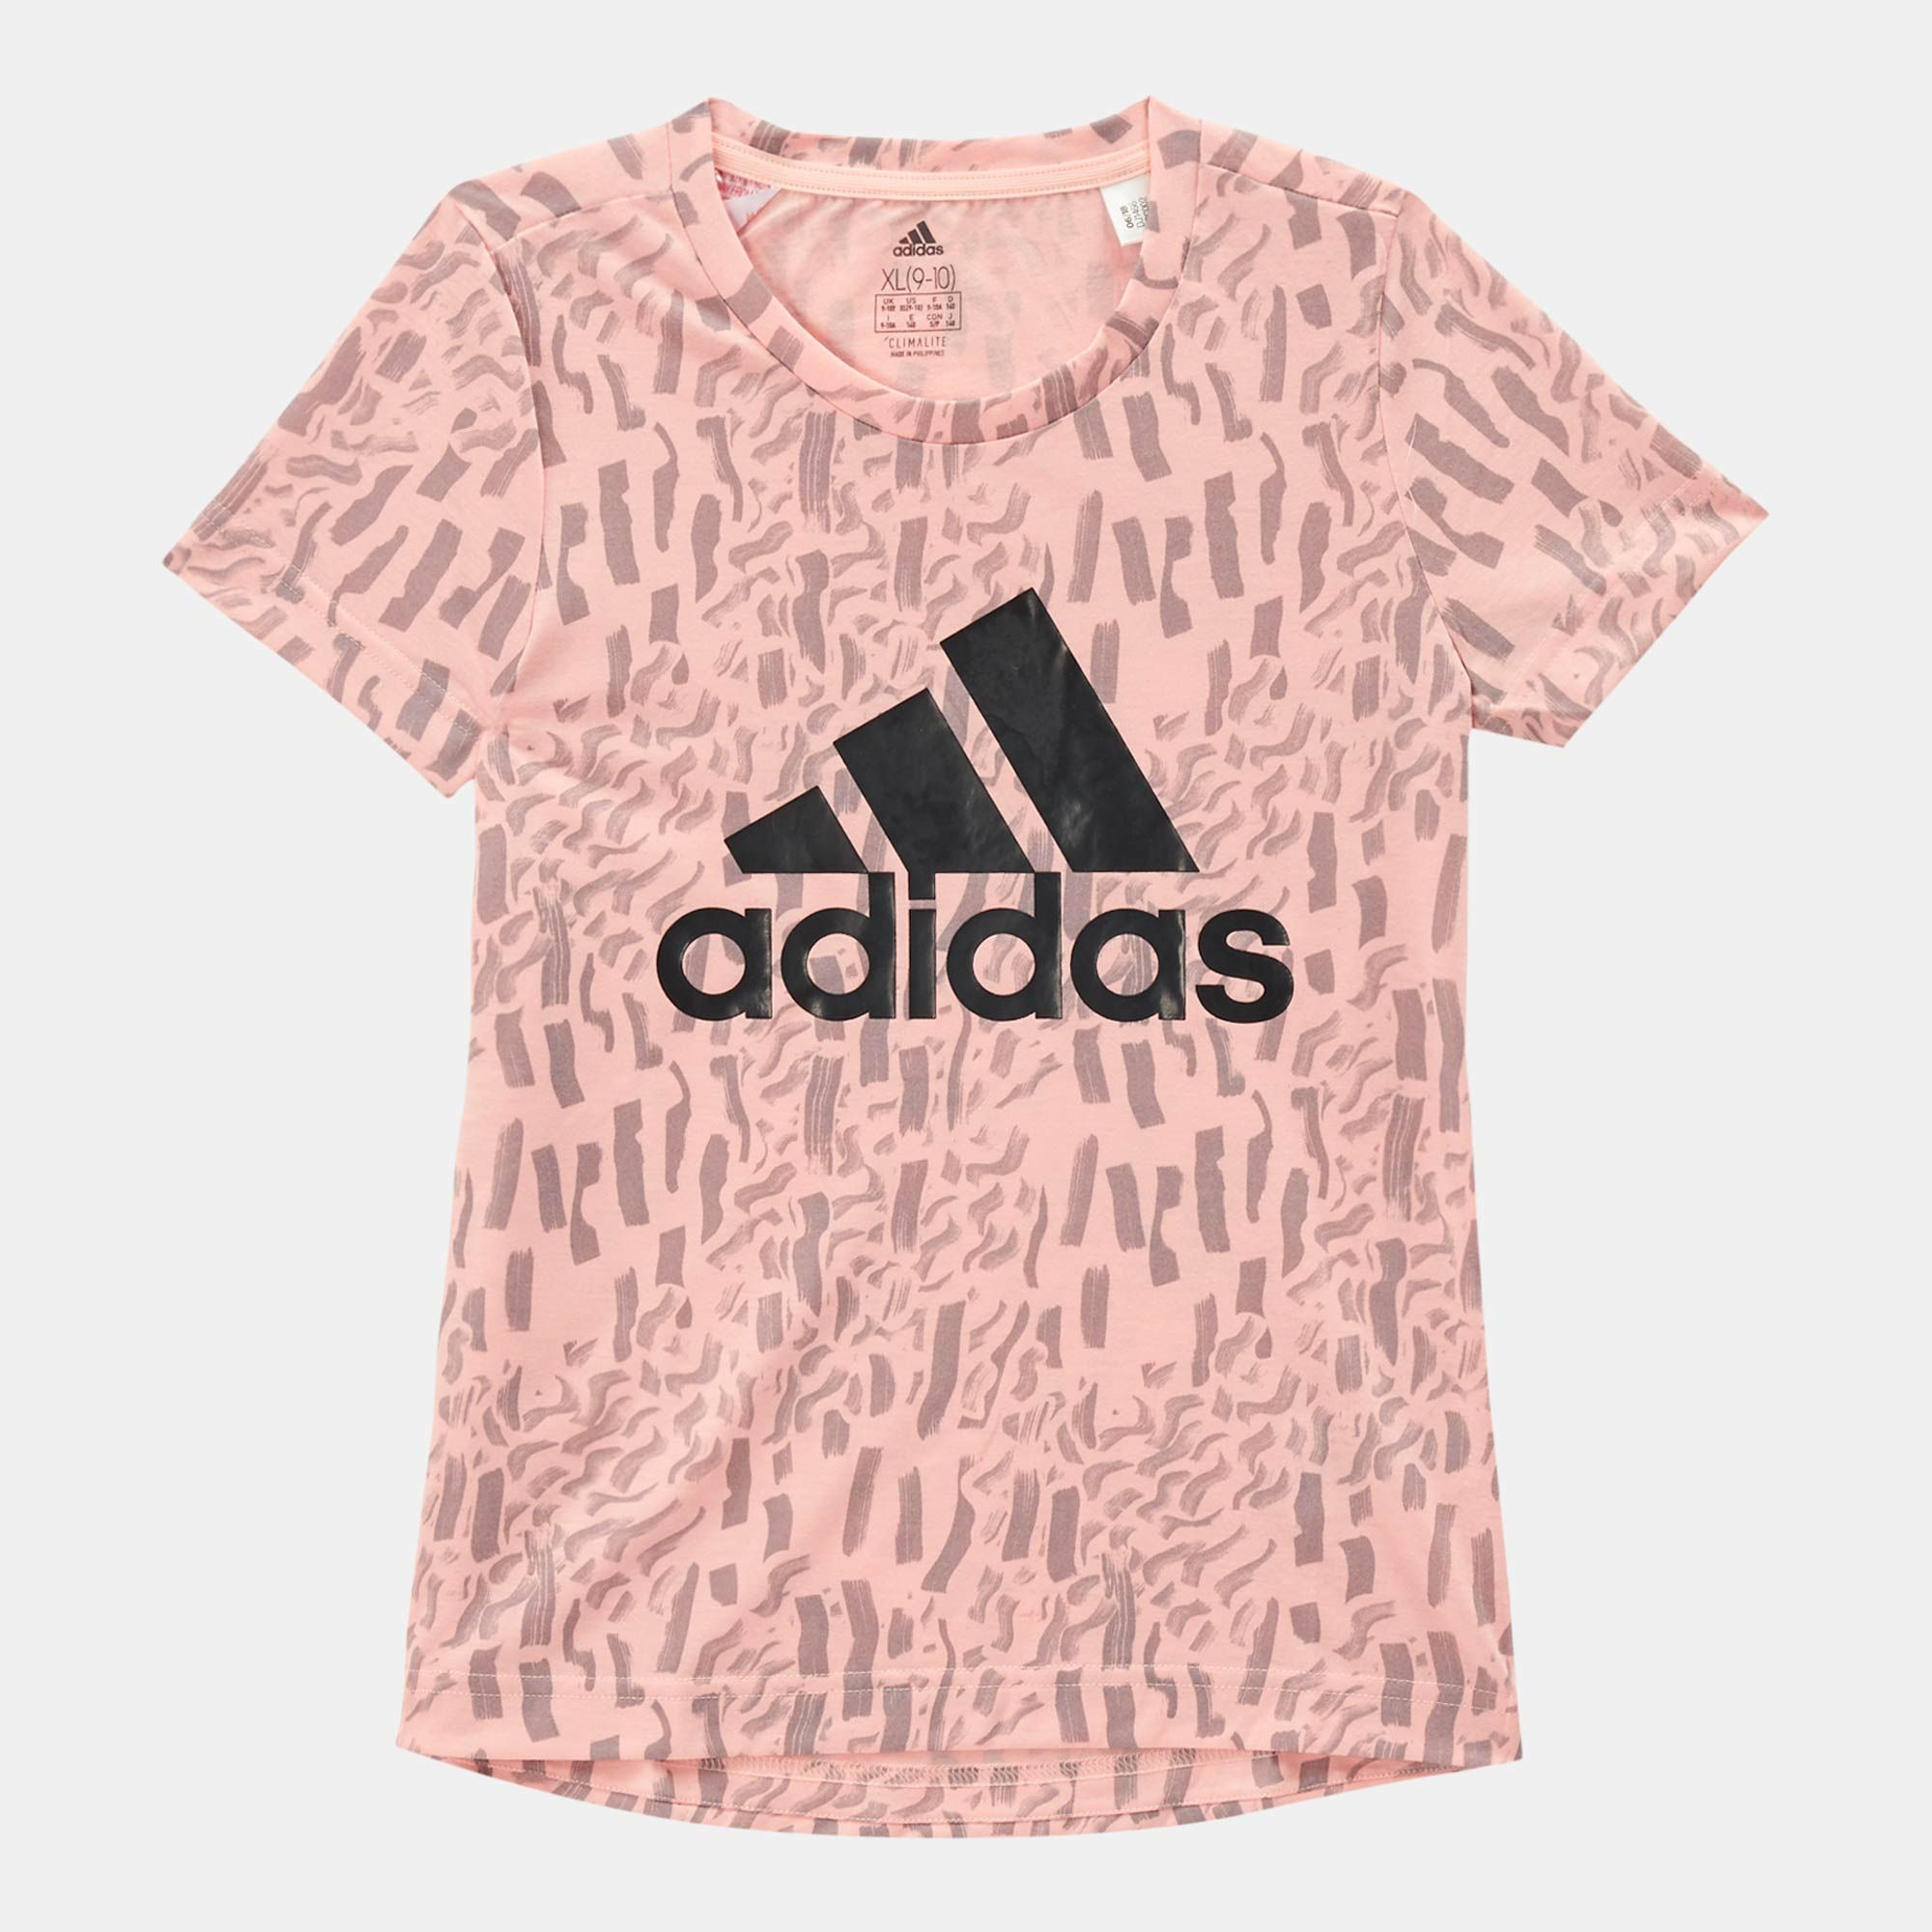 445438a7ac3 adidas Kids' Badge Of Sport T-Shirt (Little Girls) | T-Shirts | Tops |  Clothing | Kids' Sale | Sale | SSS